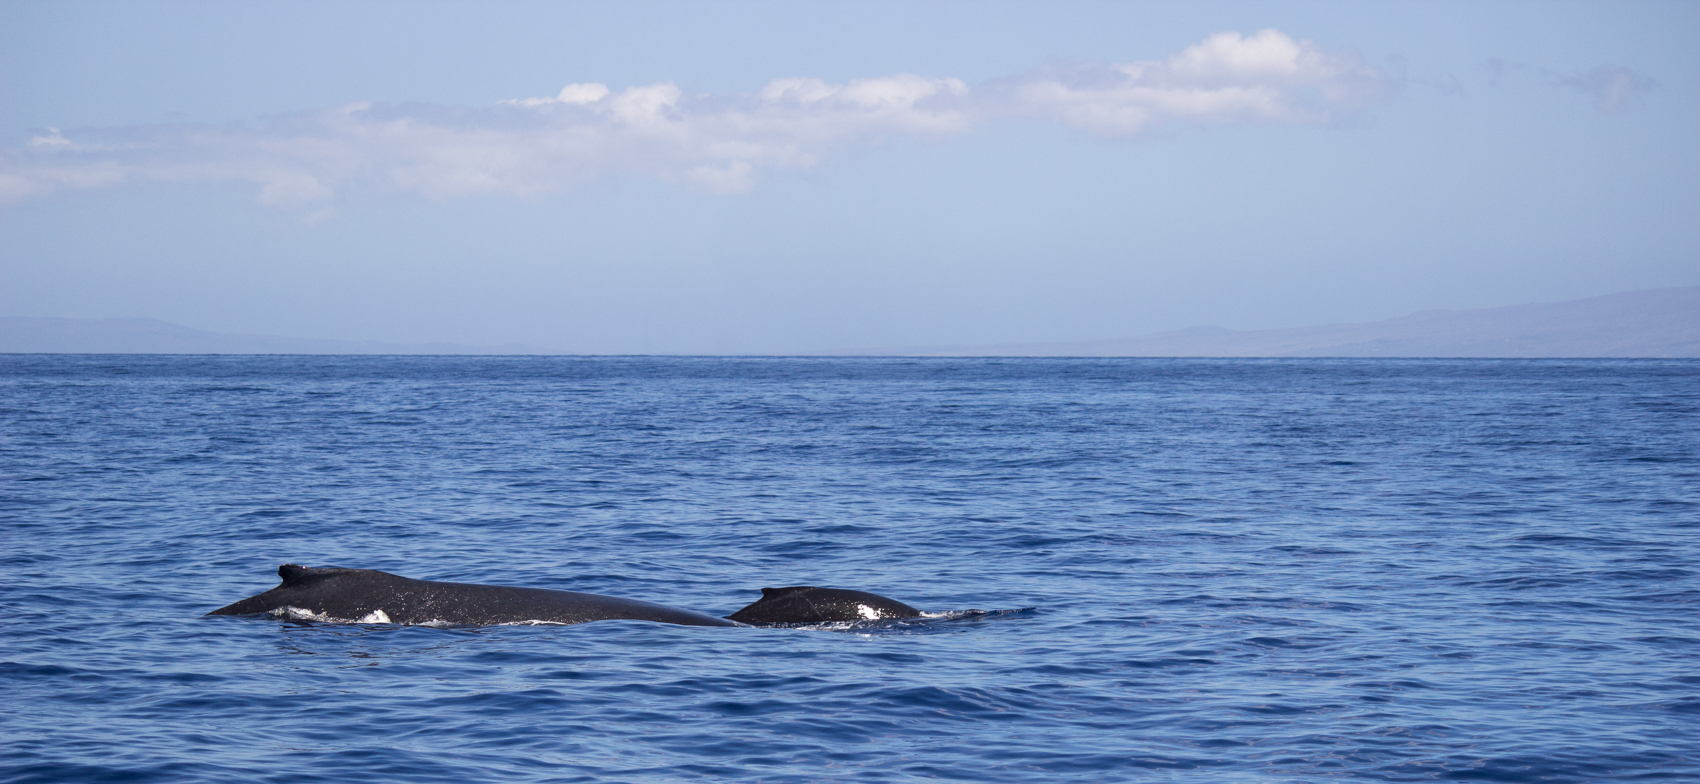 Humpback mother and calf meeting their needs in their winter waters of choice. Lanai, Hawaii.